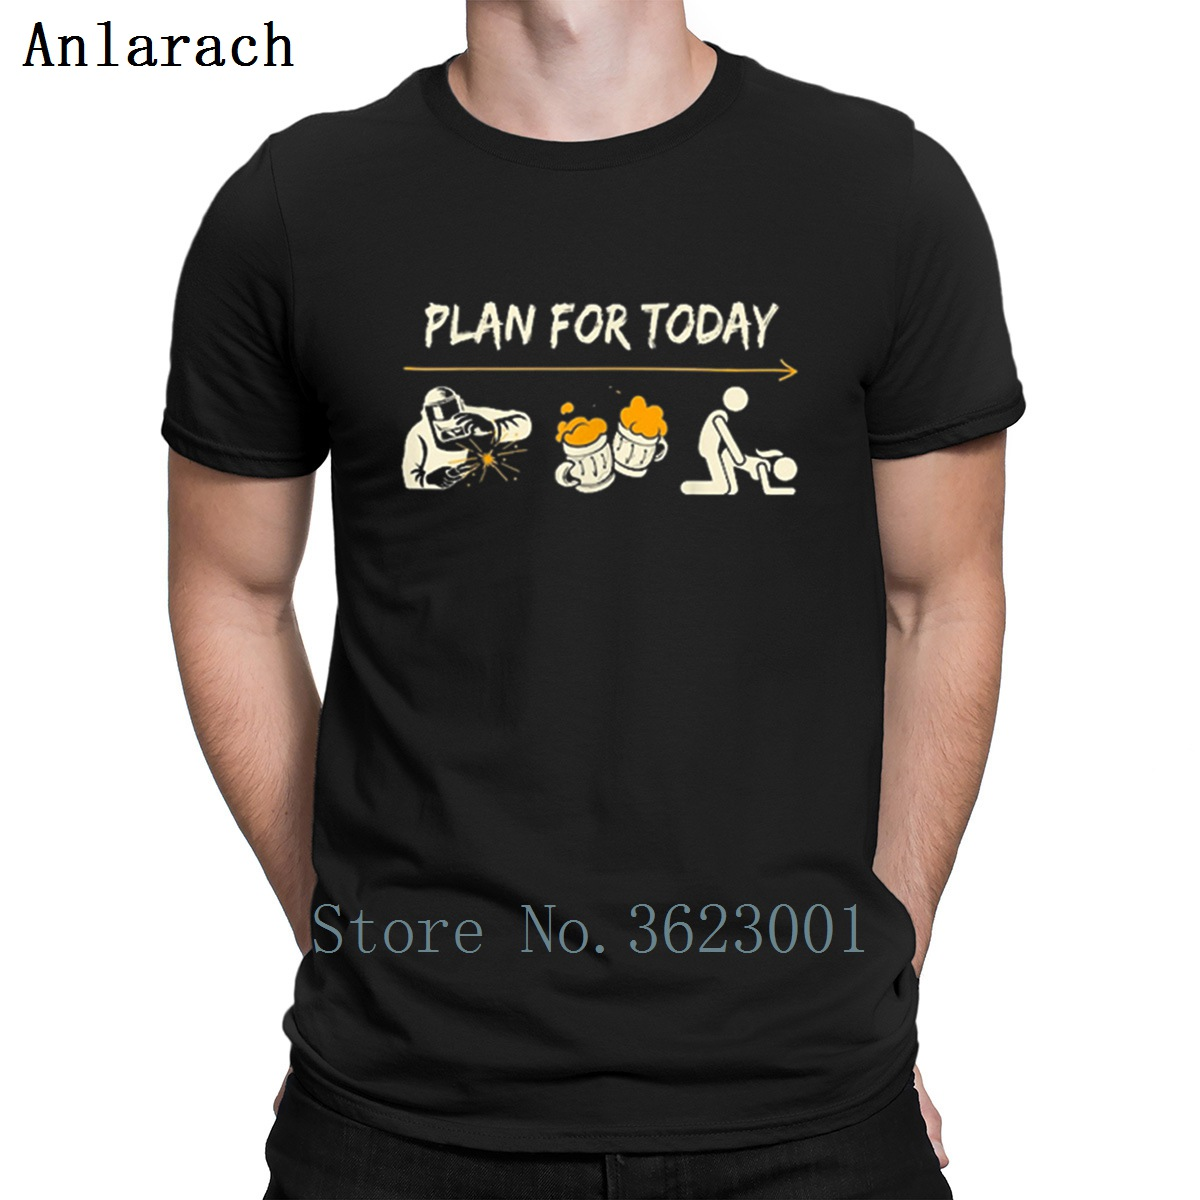 Plan For Today Welder Beer <font><b>Sex</b></font> <font><b>Funny</b></font> <font><b>Shirt</b></font> <font><b>T</b></font> <font><b>Shirt</b></font> Famous Pictures Tee <font><b>Shirt</b></font> Spring Unique S-Xxxl Customized Comfortable <font><b>Shirt</b></font> image